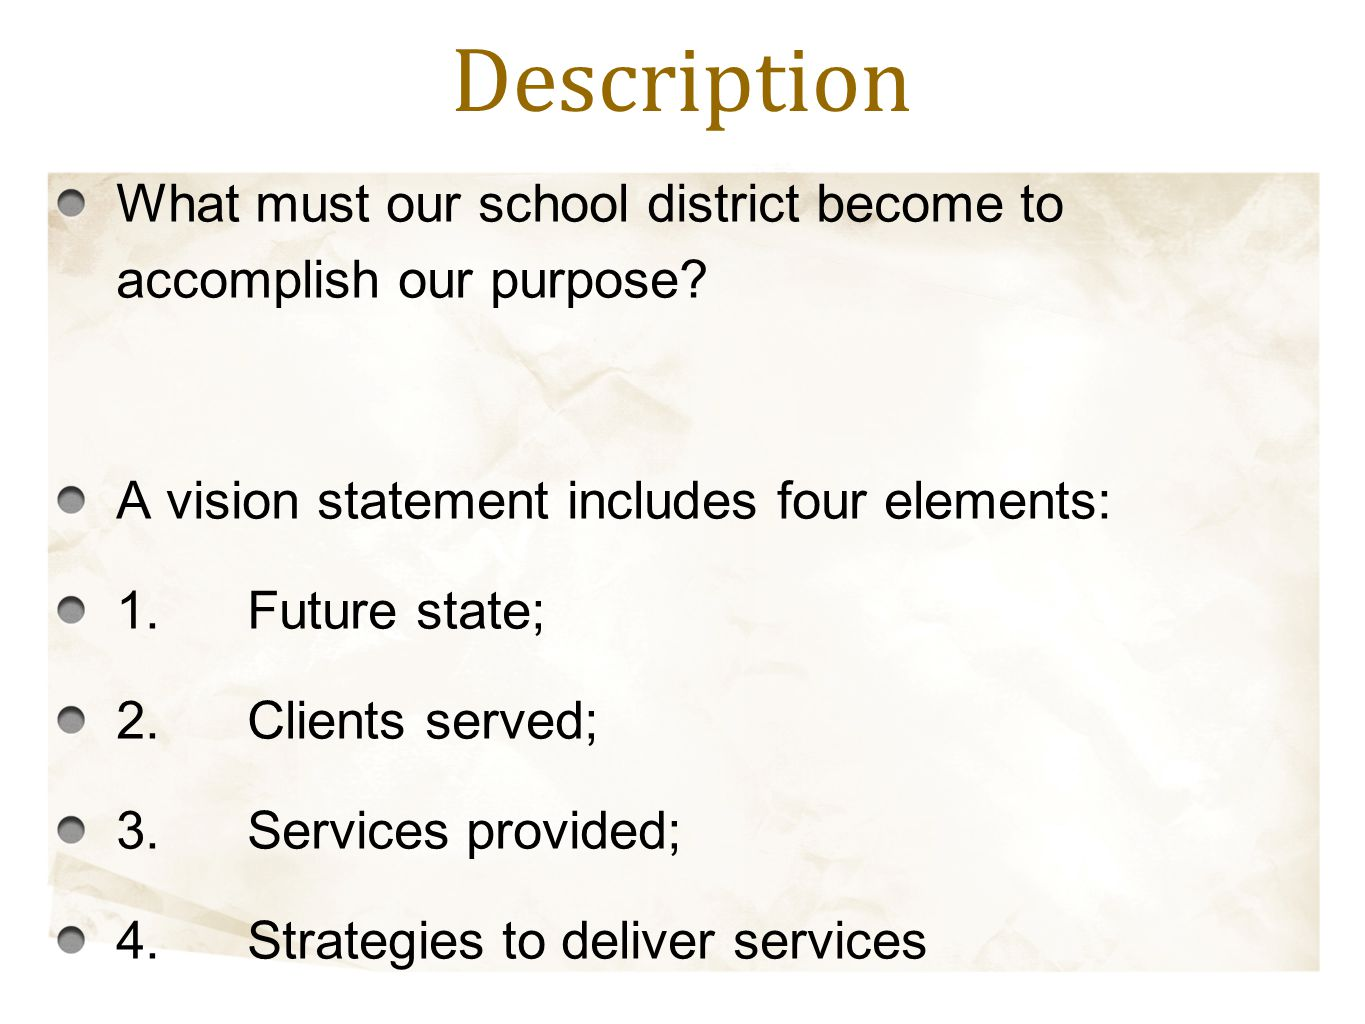 What must our school district become to accomplish our purpose? A vision statement includes four elements: 1.Future state; 2.Clients served; 3.Service